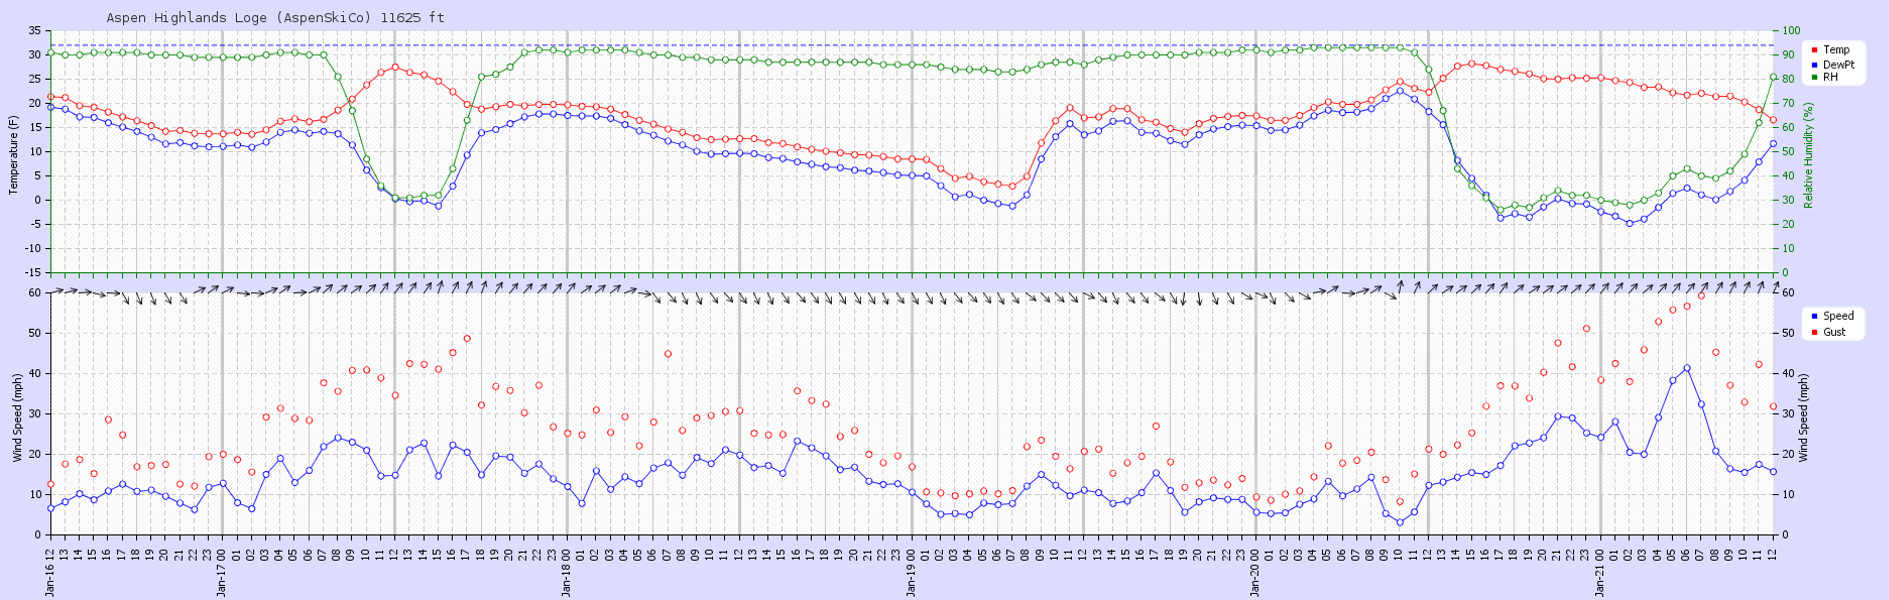 <b>Figure 15:</b> Recorded weather data from the Loge weather station located at 11,625 ft at Aspen Highlands ski area (~9 miles to the north northwest of the accident site) from January 16 through January 21. The top panel shows temperature (red), dew point (blue), and relative humidity (green). The bottom panel shows wind speed (blue), gusts (red circles), and wind direction (black arrows). (<a href=javascript:void(0); onClick=win=window.open('https://caic-production.imgix.net/kf6367v72ejl6rqwis2ywm1kcfie?ixlib=php-3.1.0&s=970f4a003c429fe30c5ec2aebc82e38d','caic_media','resizable=1,height=820,width=840,scrollbars=yes');win.focus();return false;>see full sized image</a>)